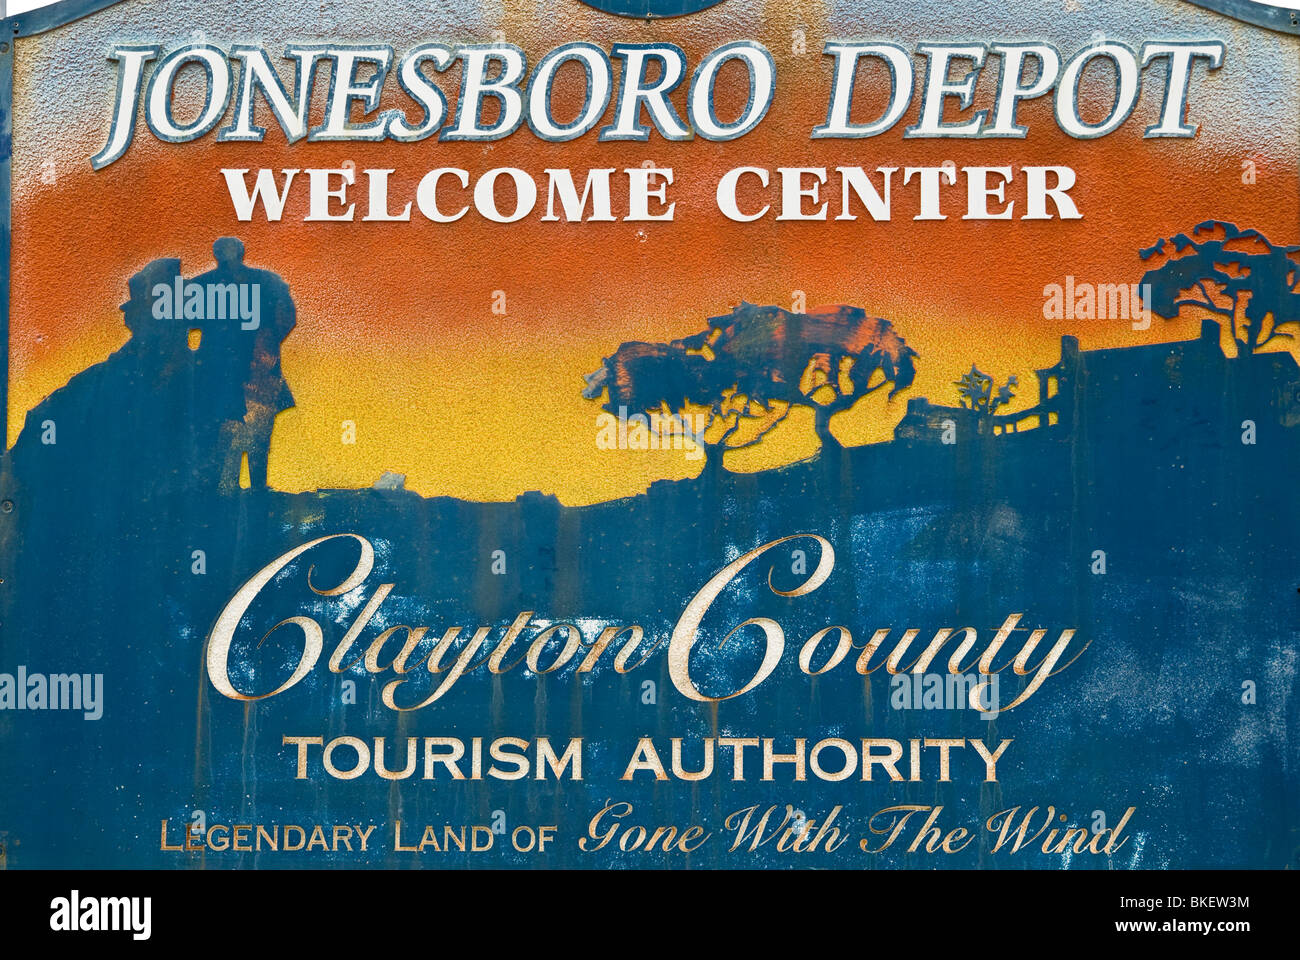 'Gone with the Wind' tourism sign in Jonesboro, Georgia, USA - Stock Image